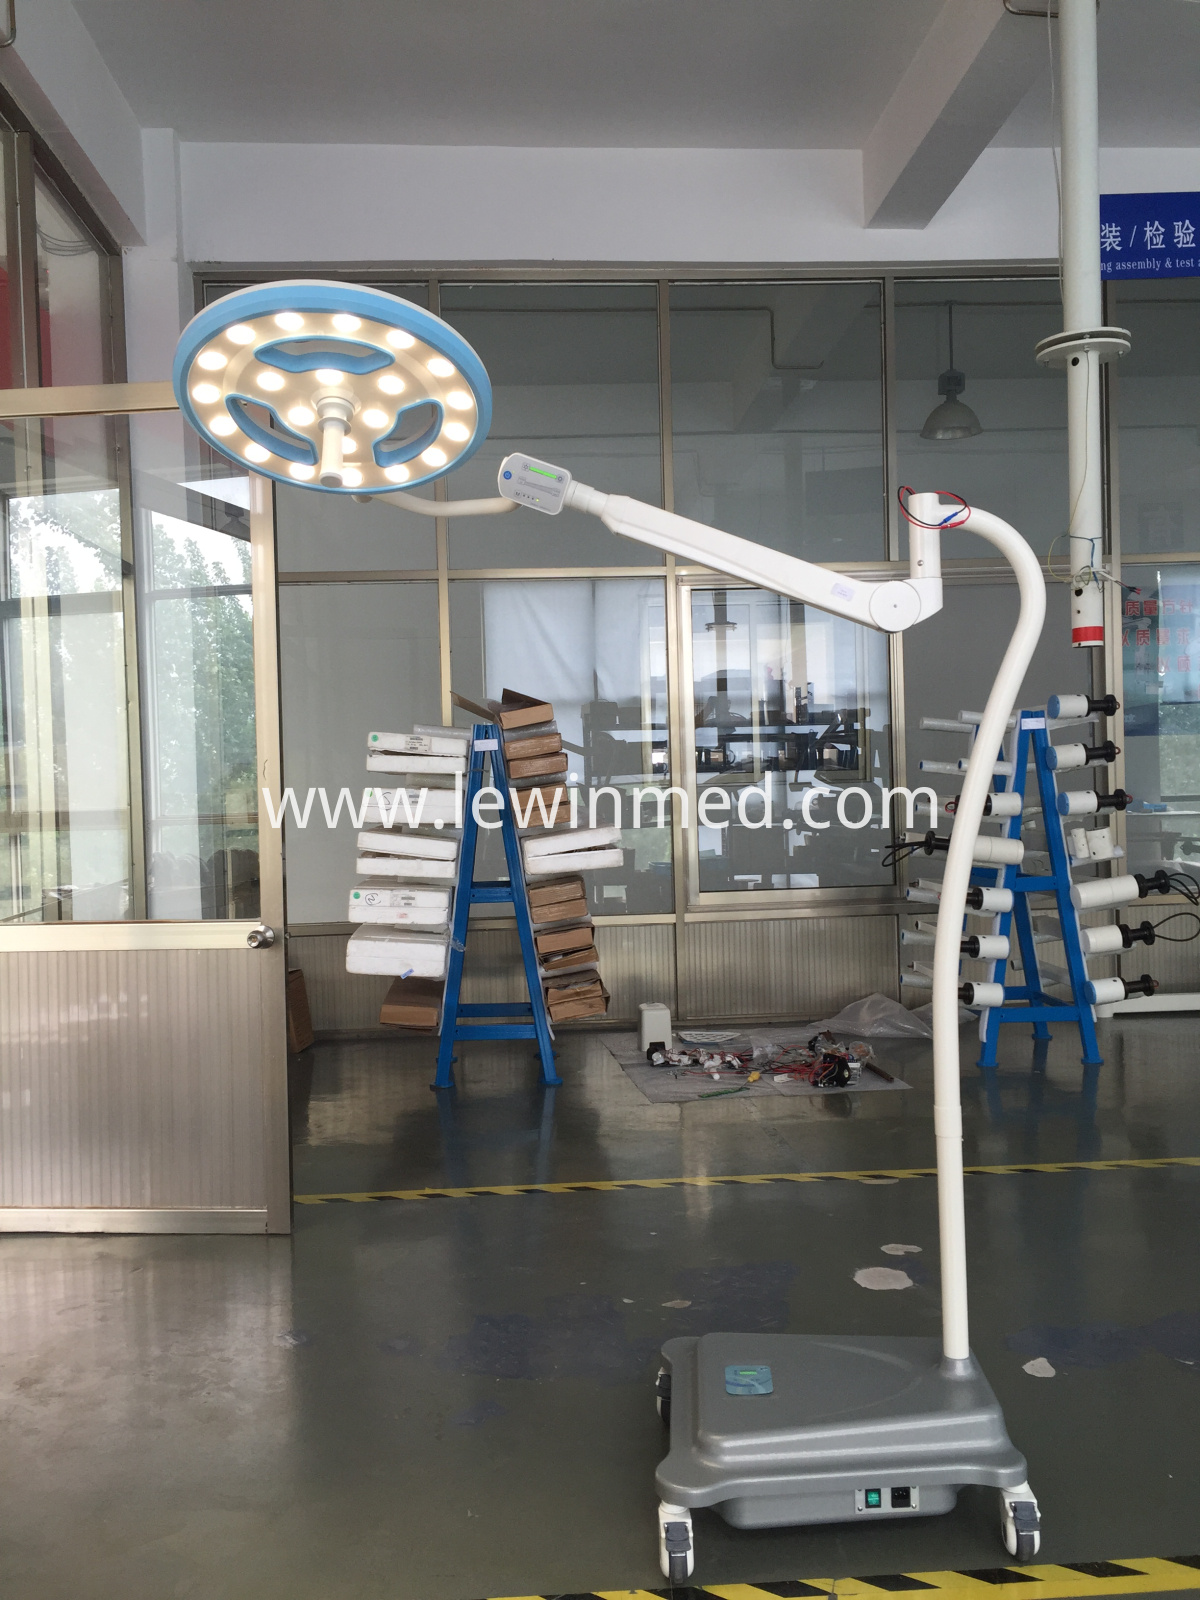 Cold light mobile operation lamp